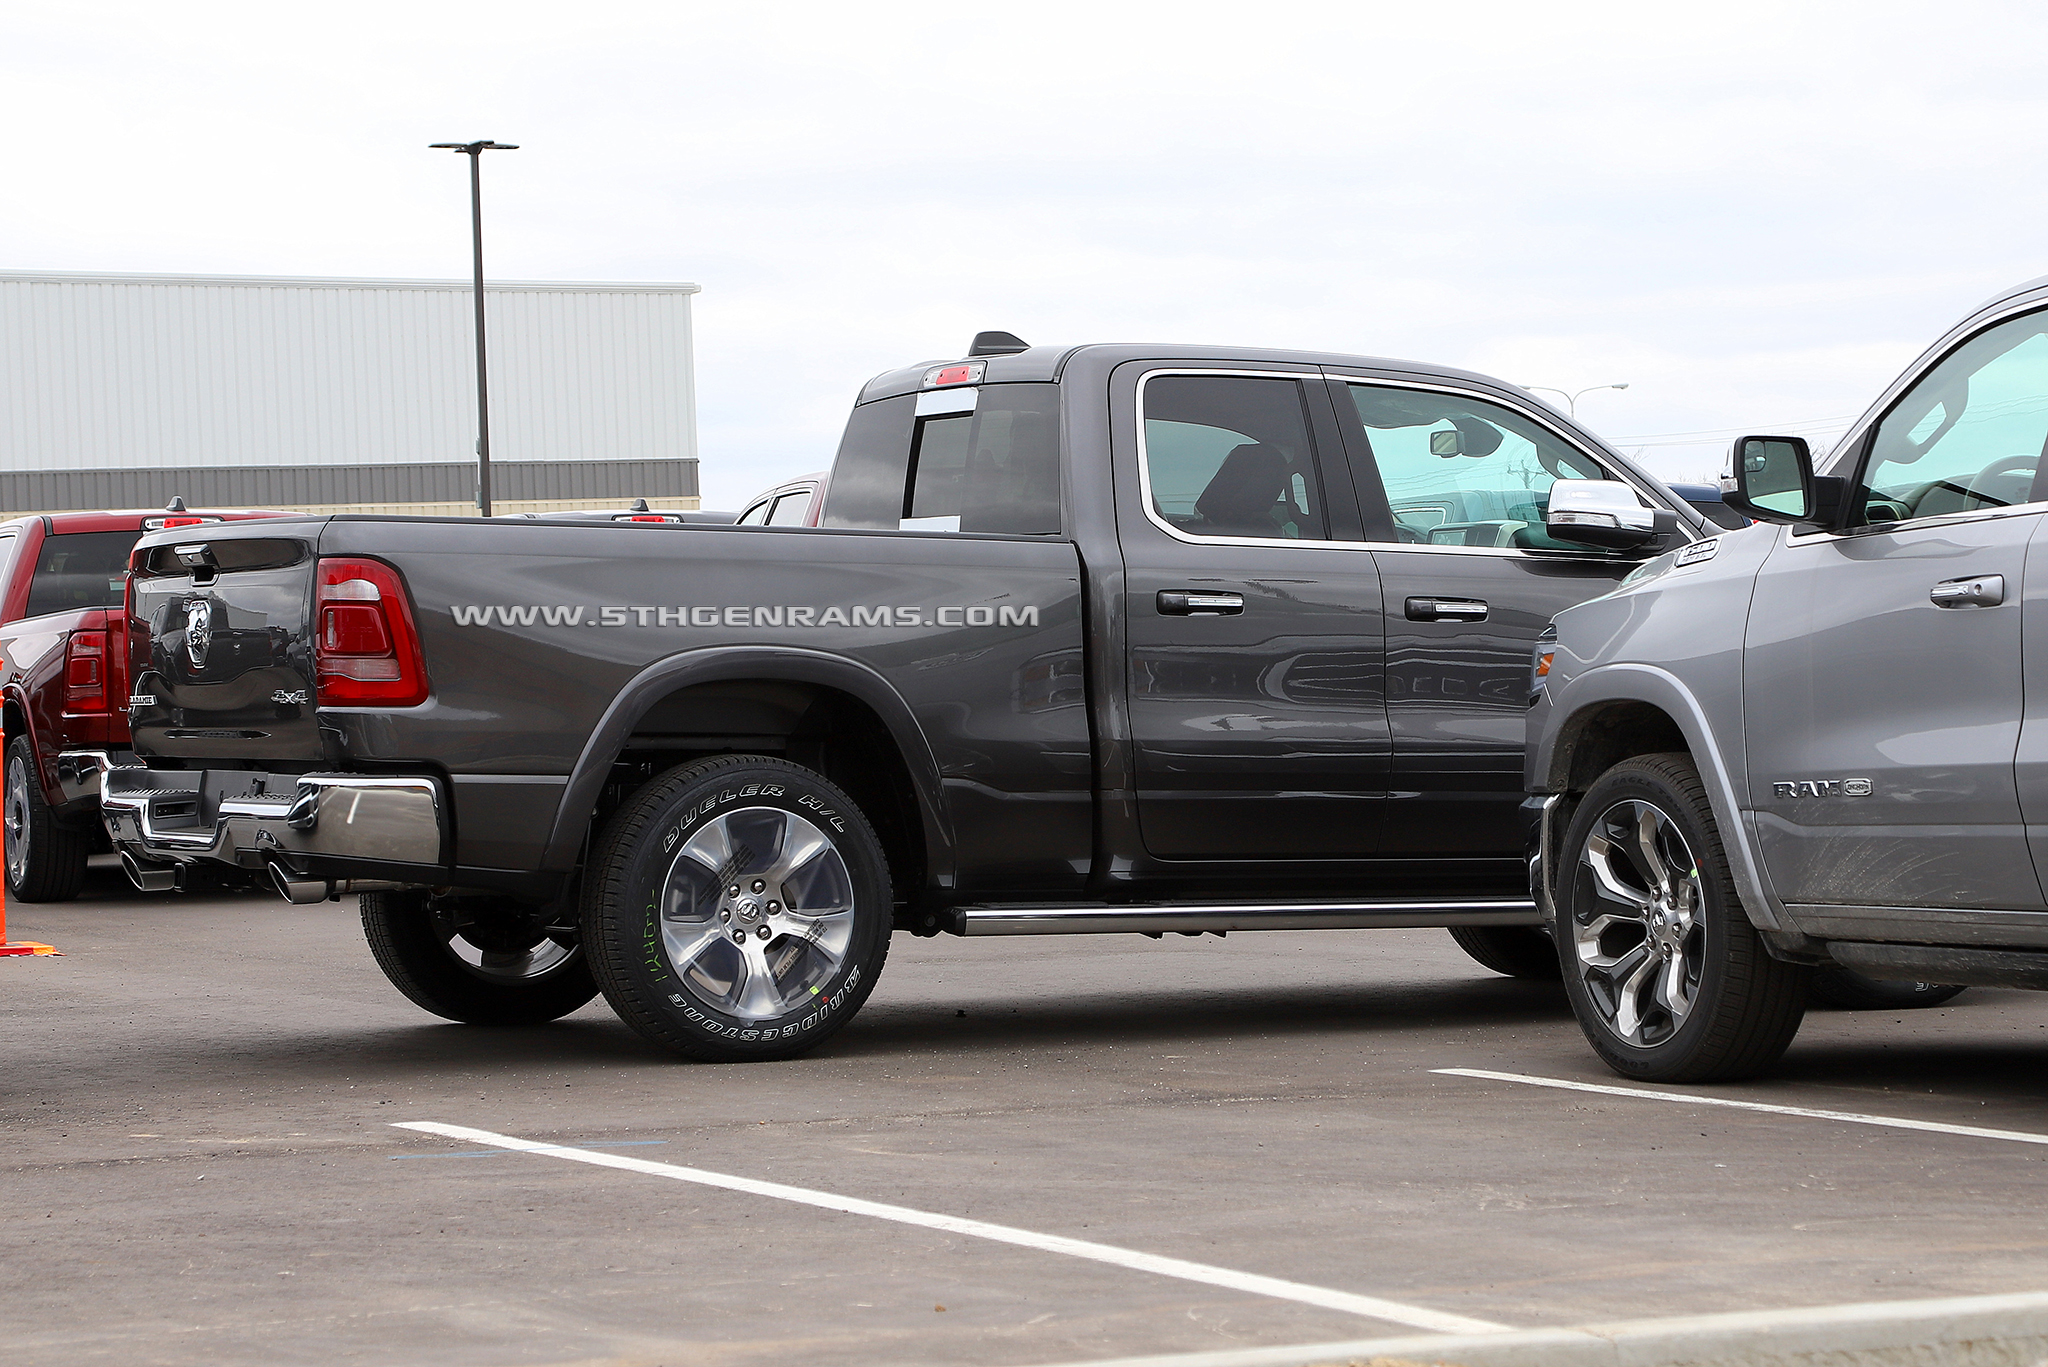 Quad Cabs and Ram Boxes are now in production - 5th Gen Rams